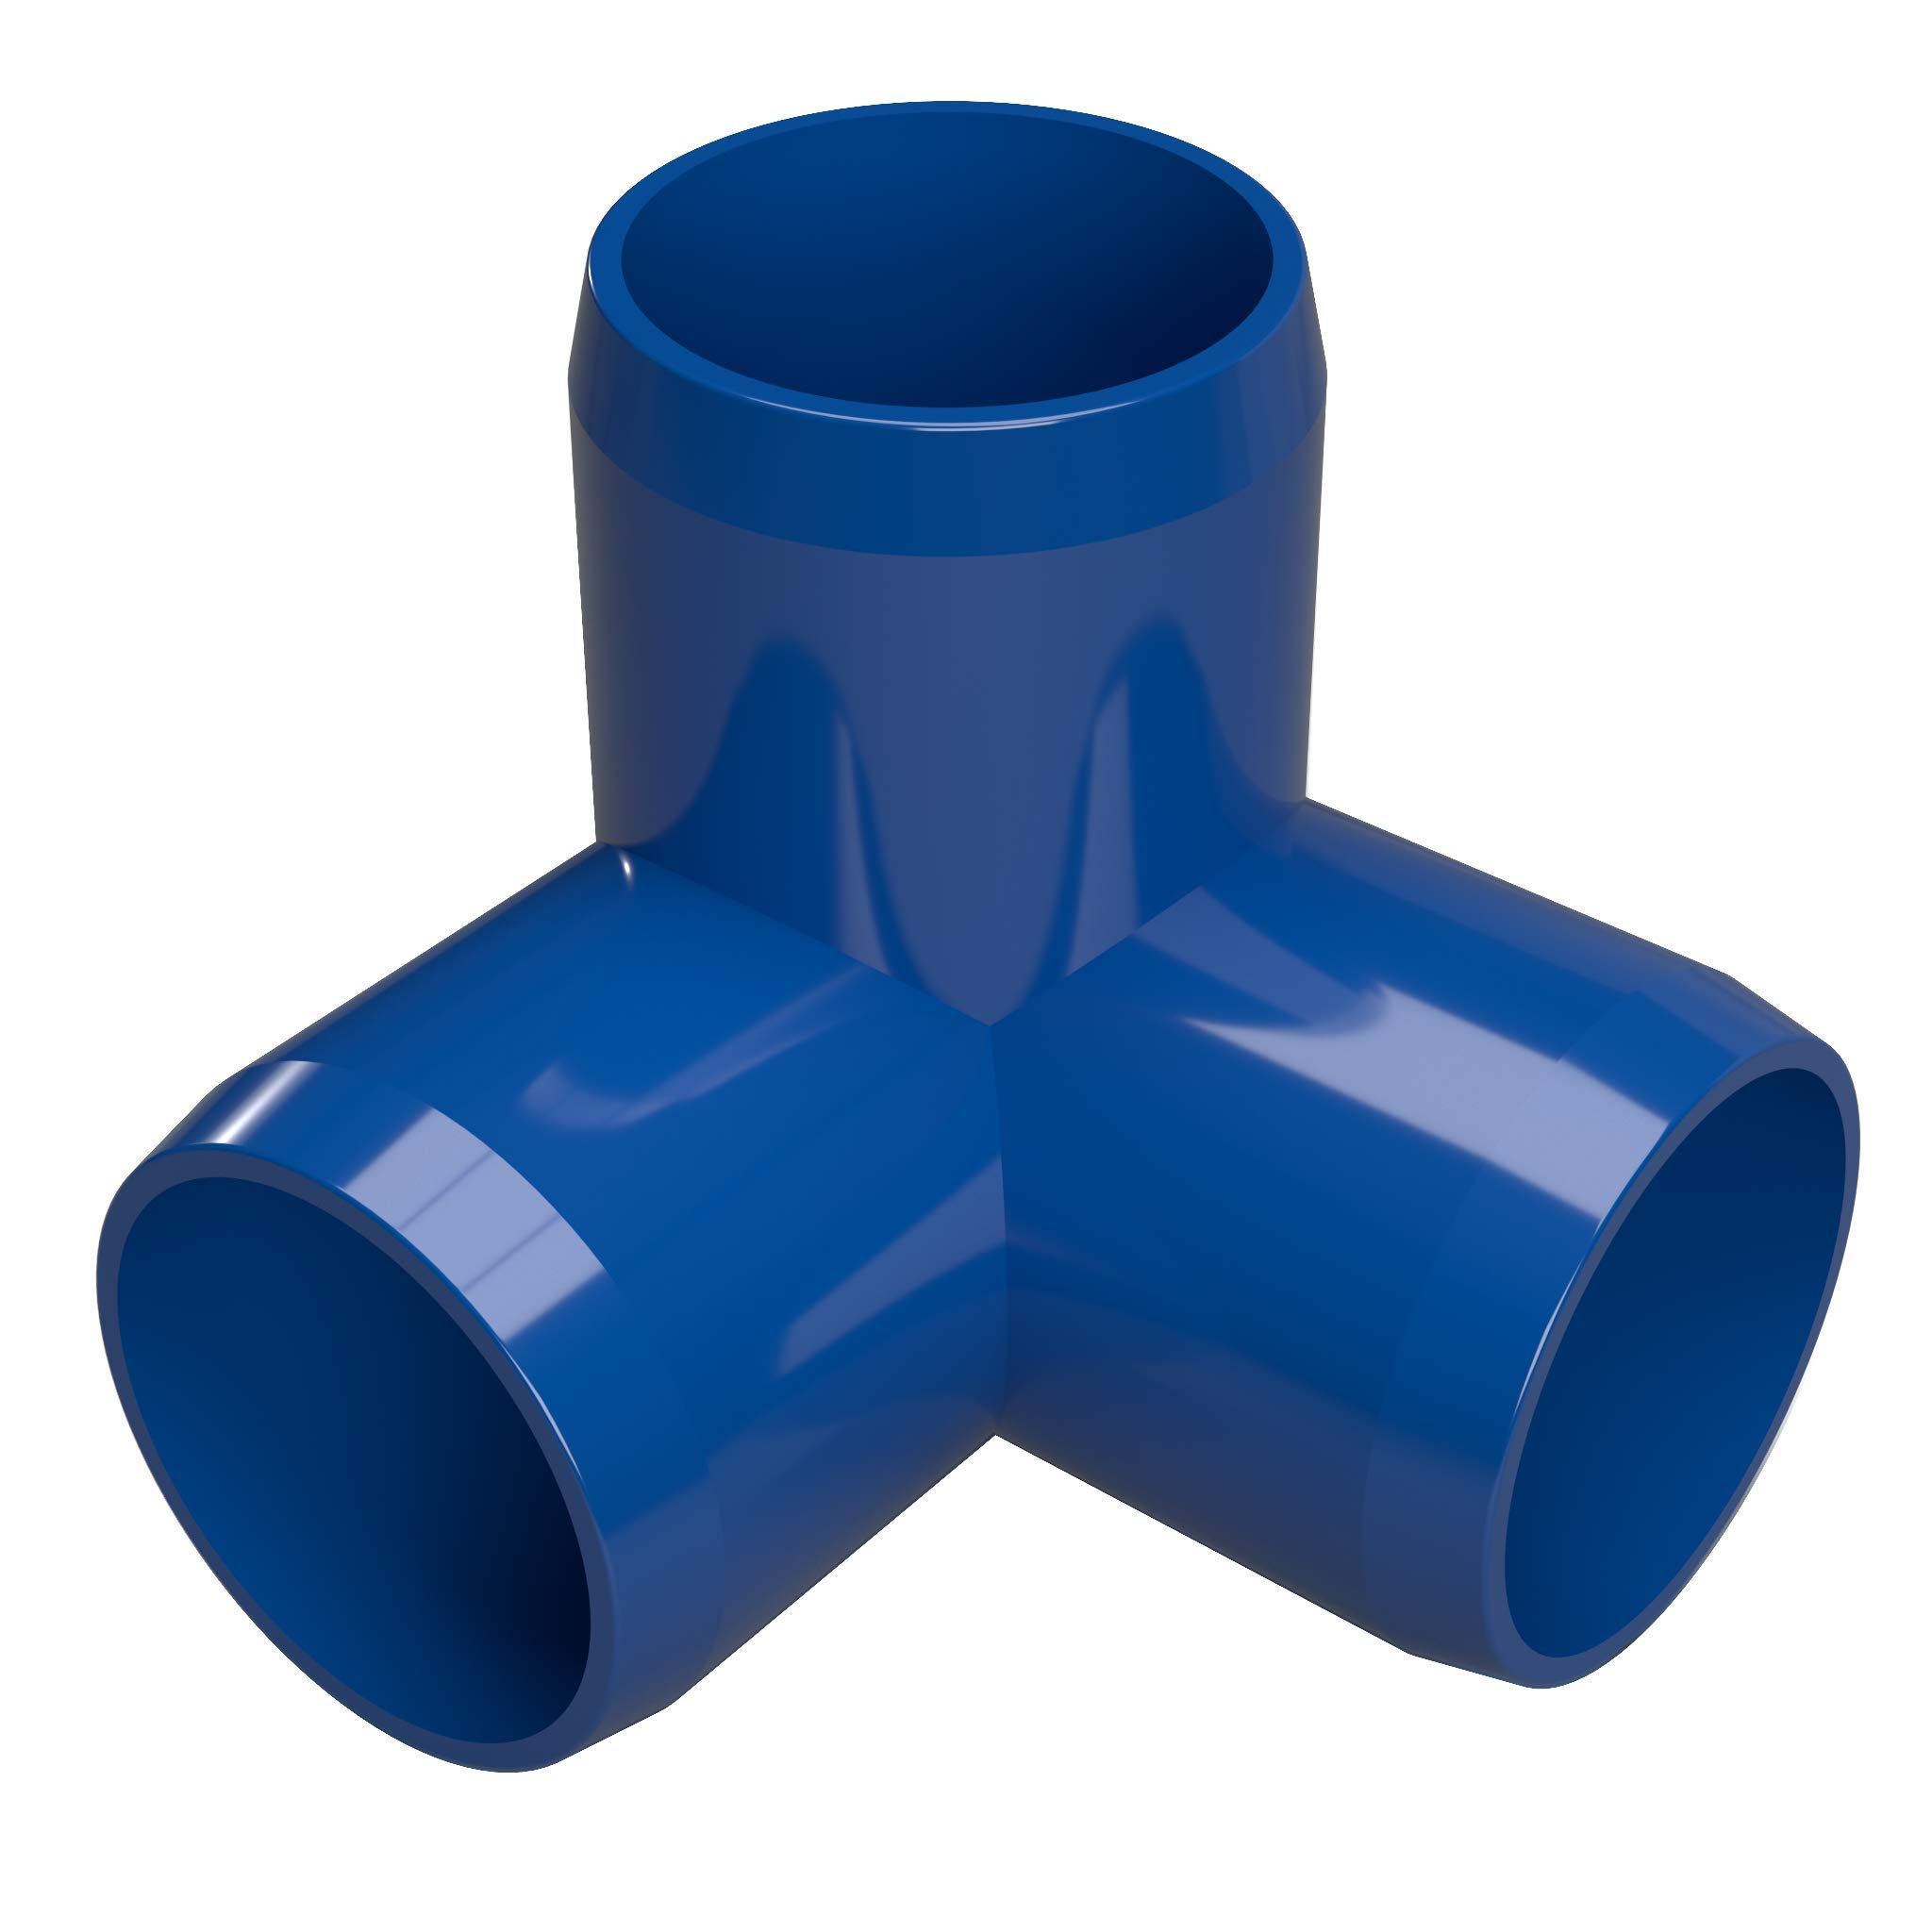 FORMUFIT F0343WE-BL-8 3-Way Elbow PVC Fitting, Furniture Grade, 3/4'' Size, Blue (Pack of 8)